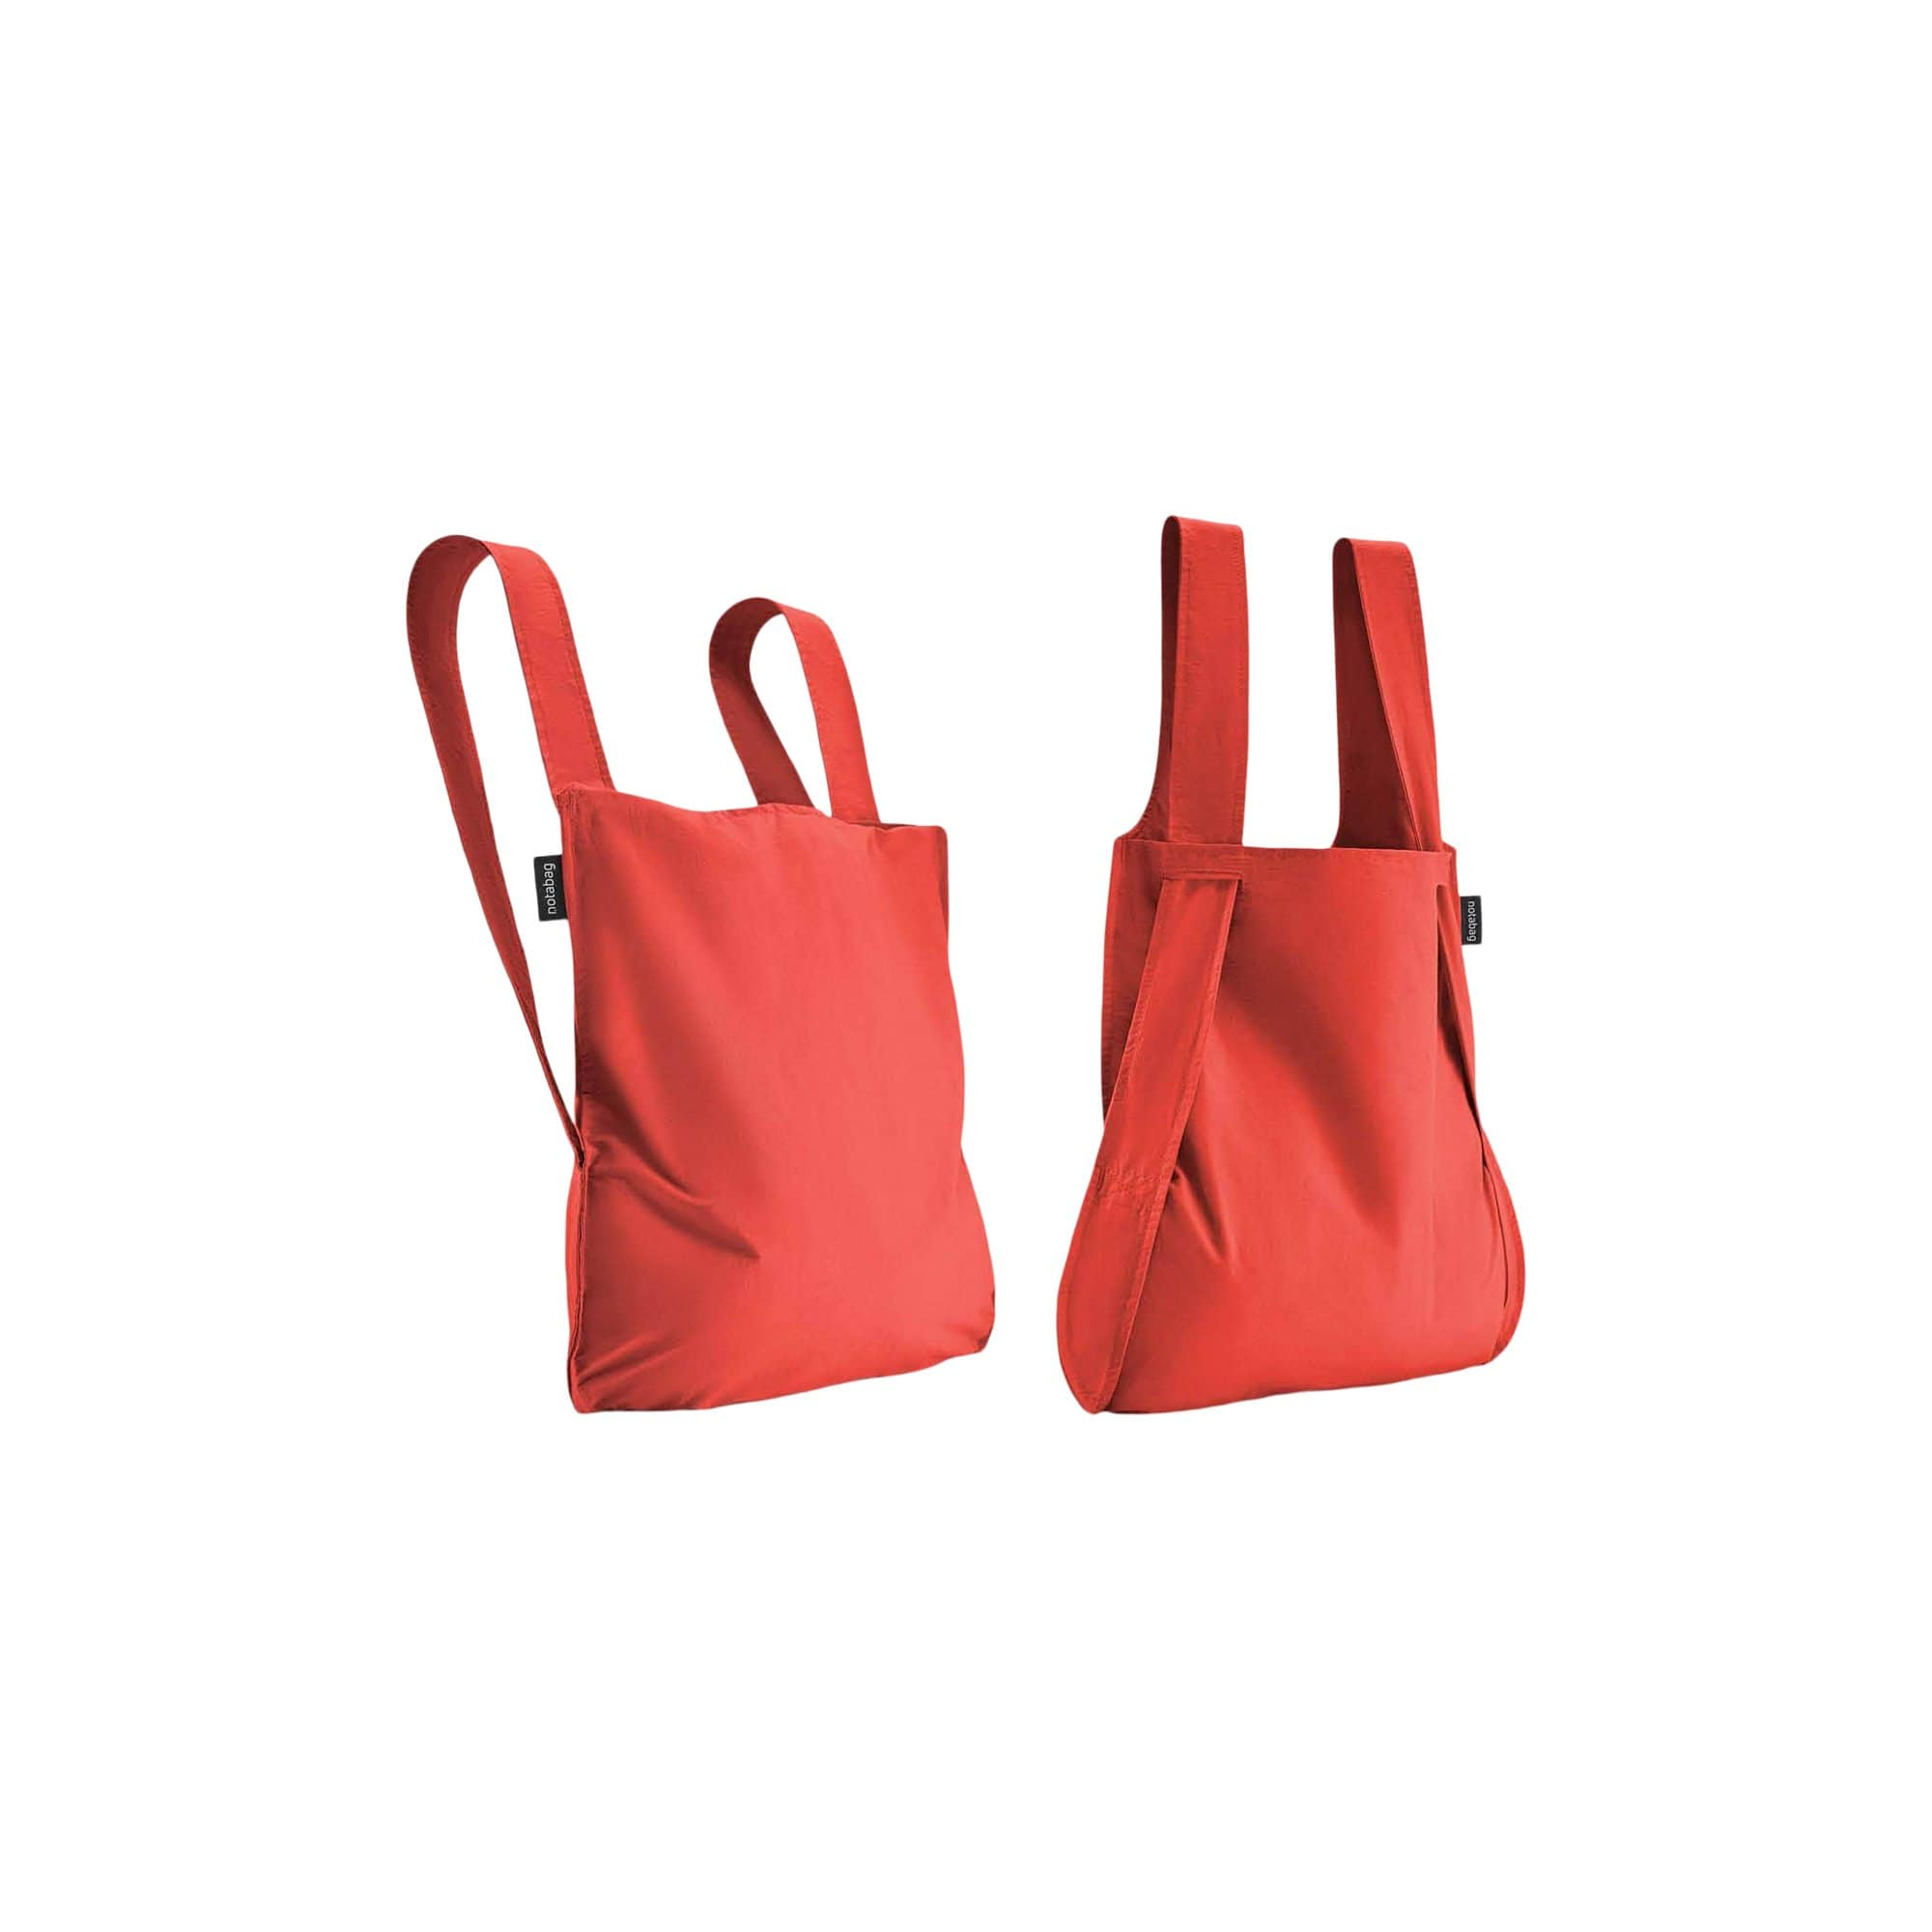 Notabag in Red